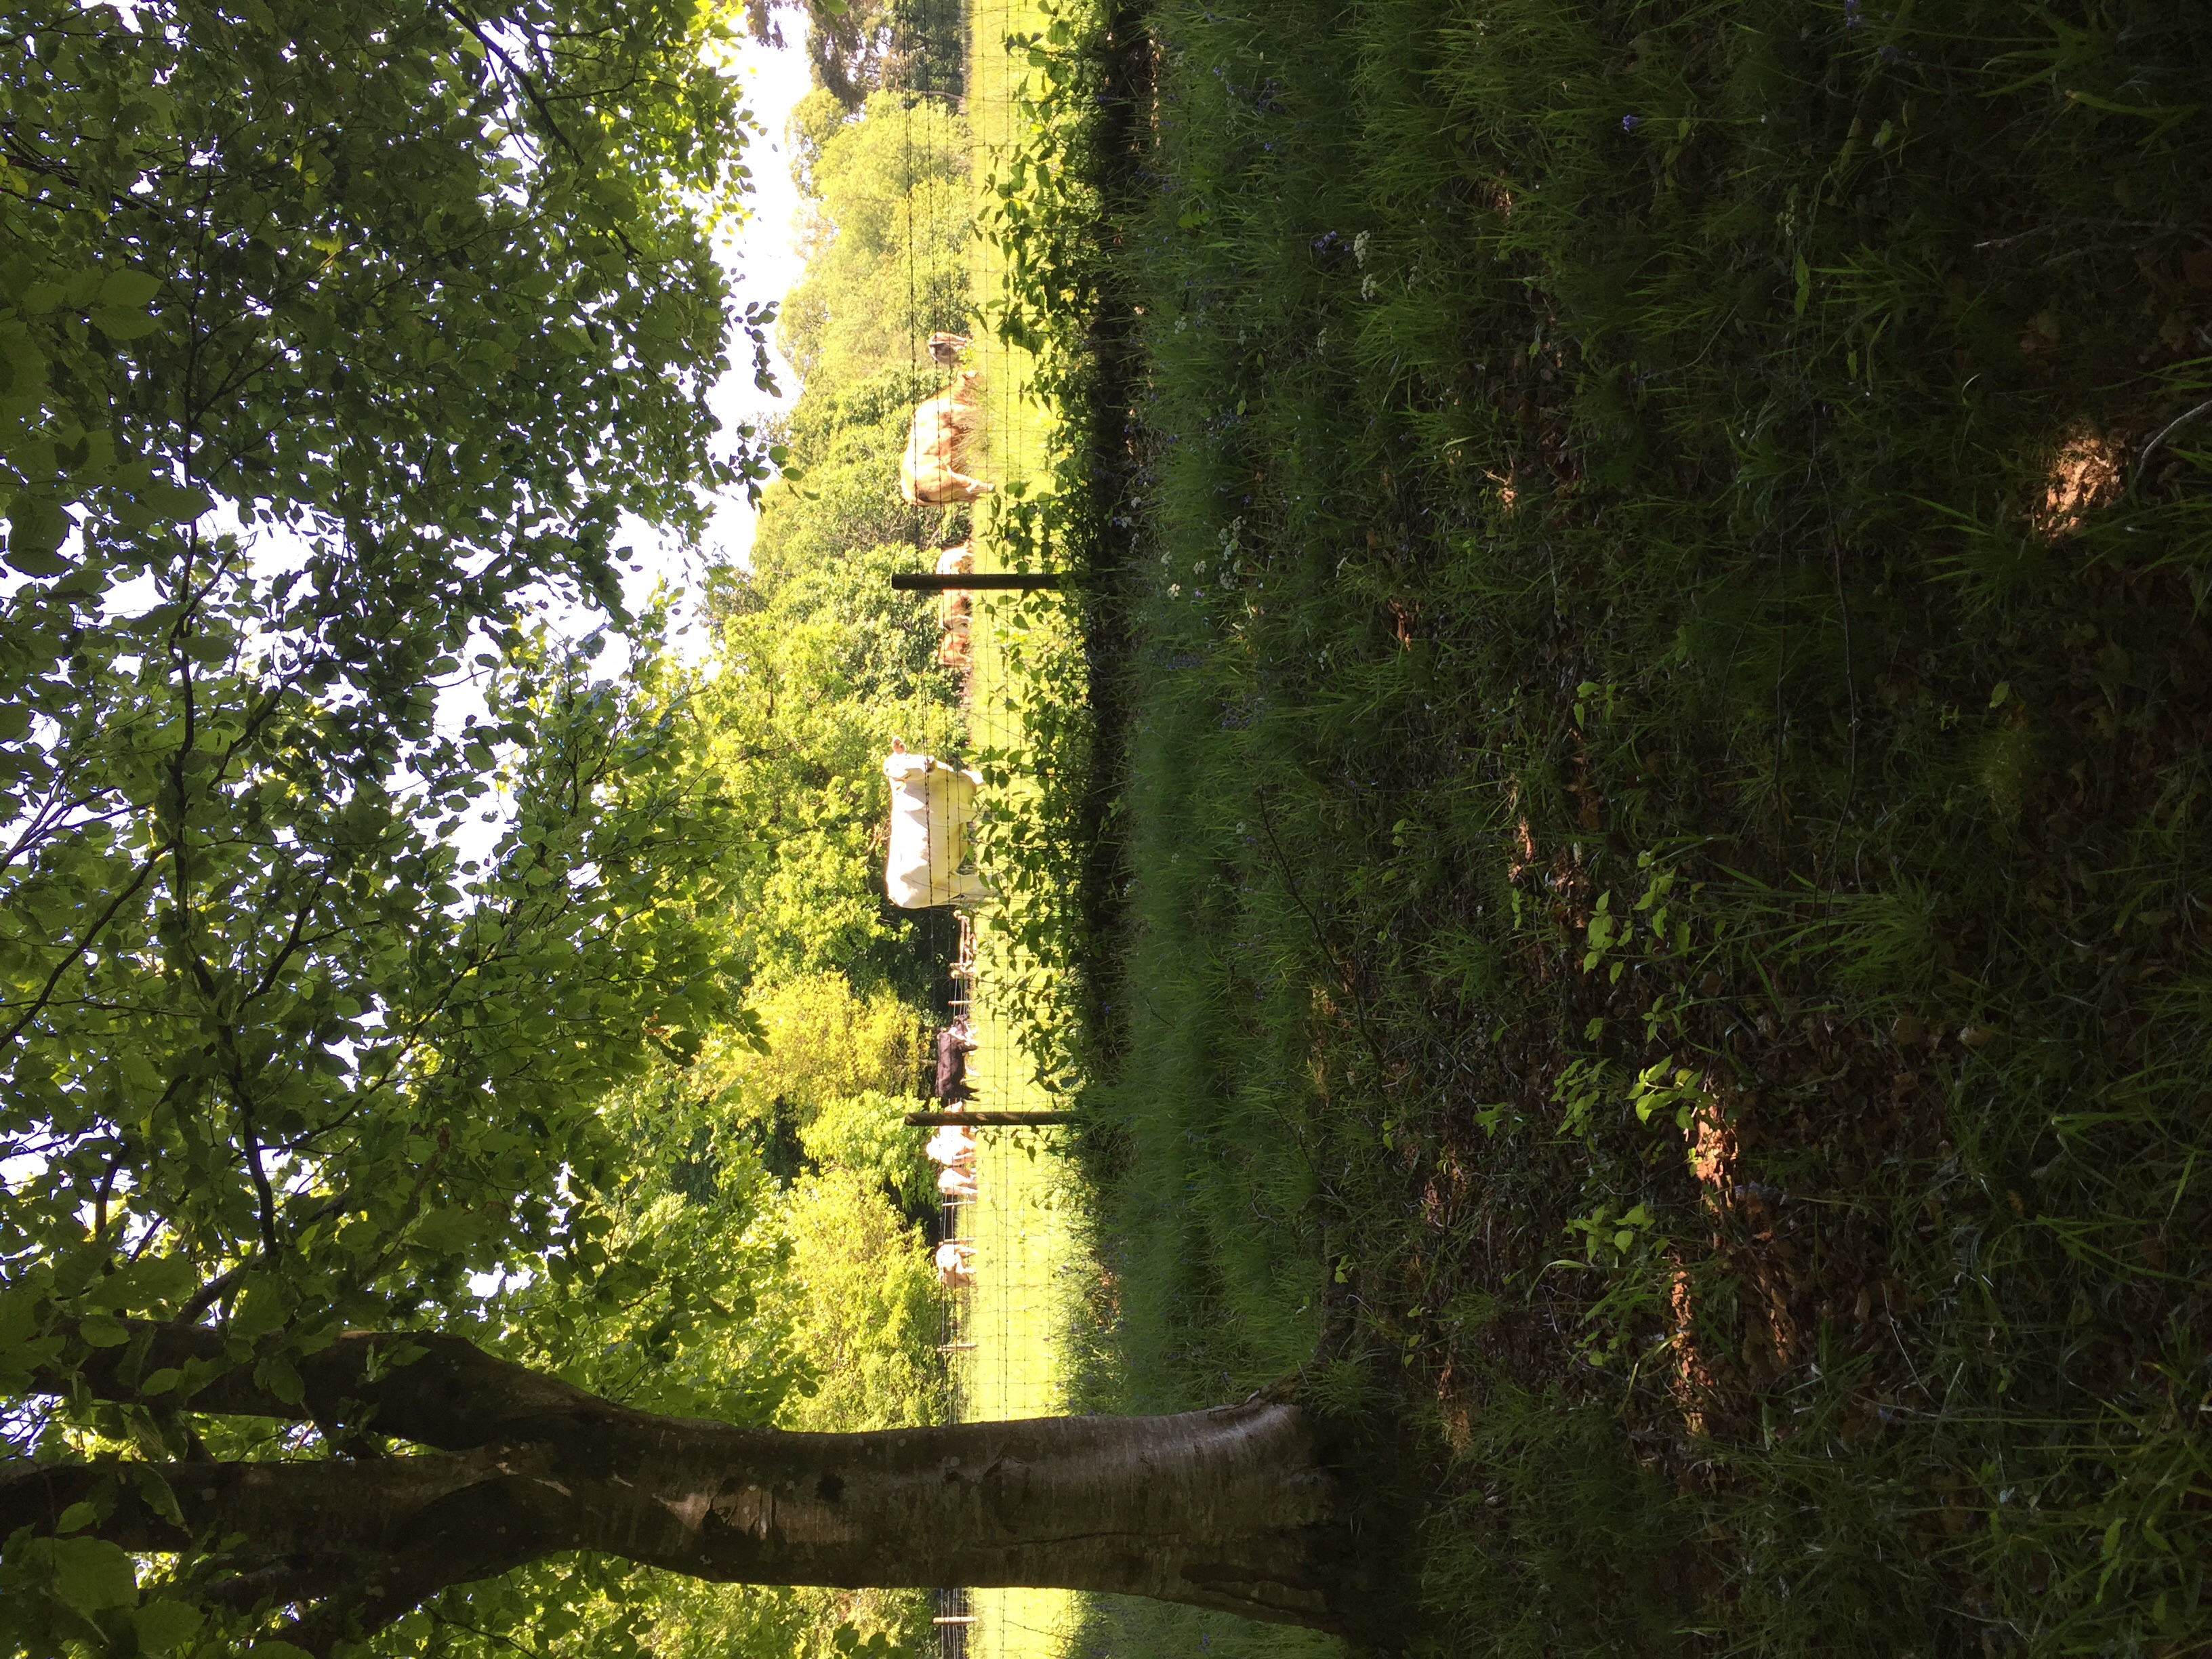 Cows munching away in the pasture next to the estate.